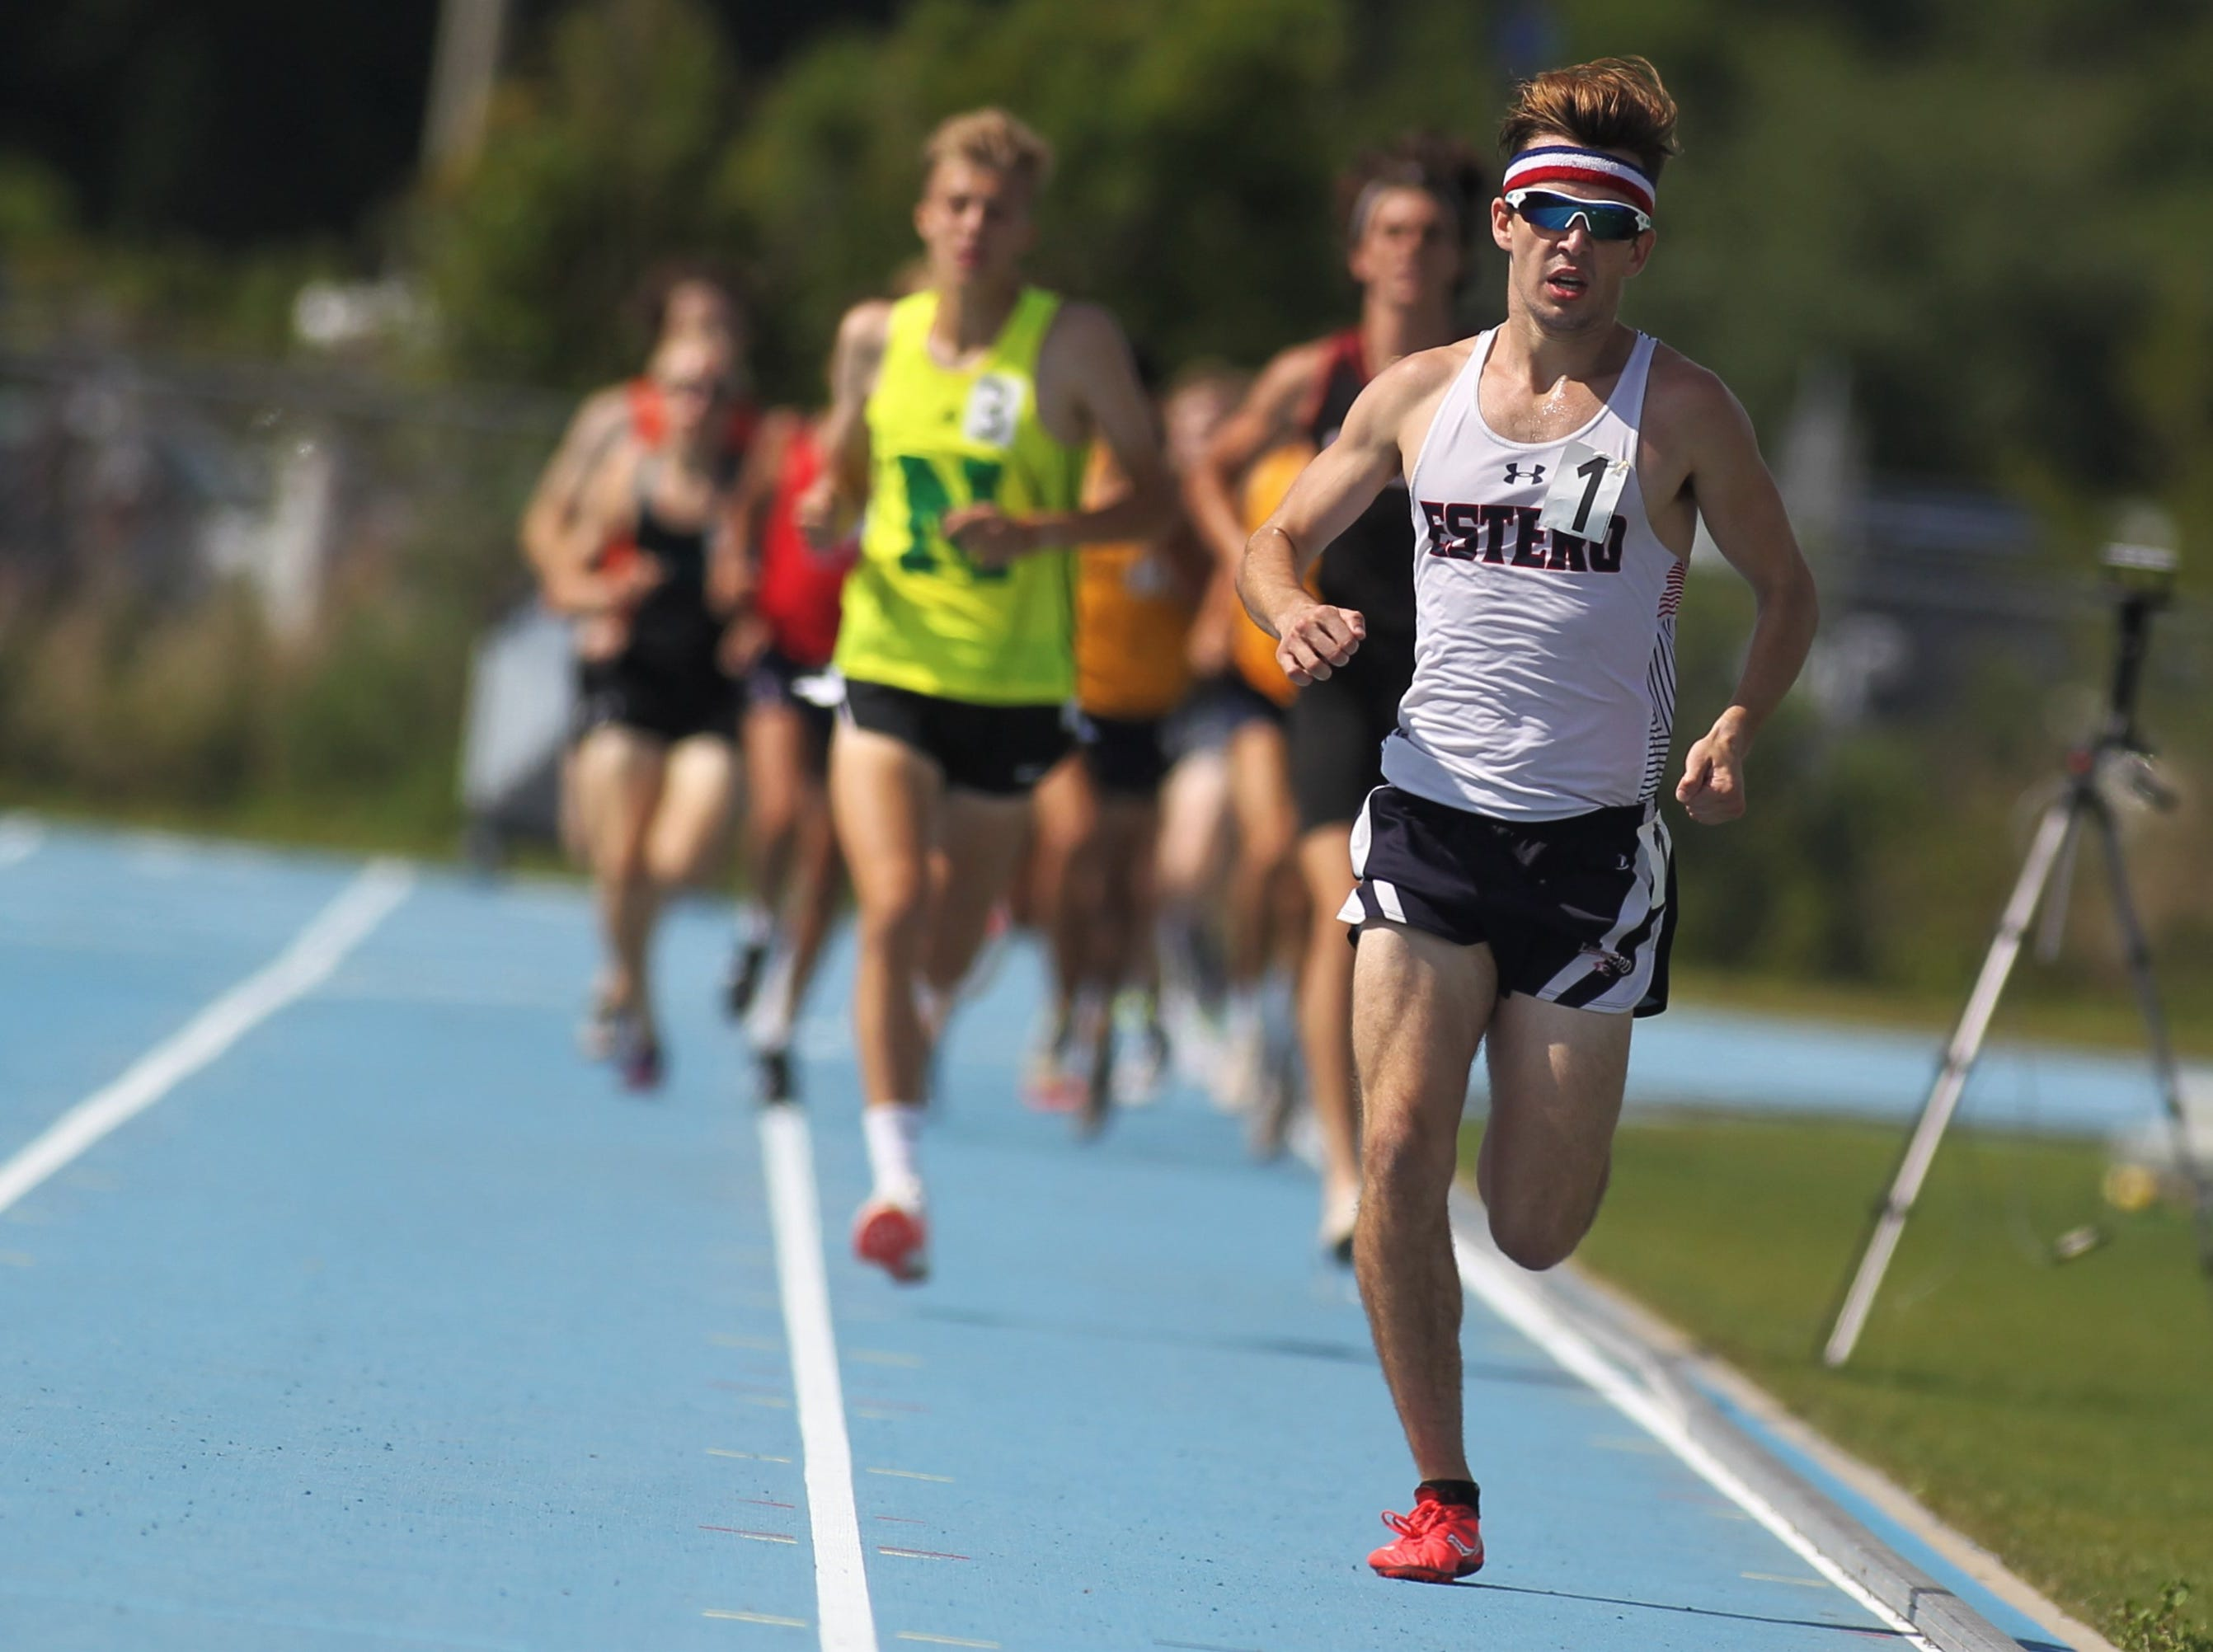 Estero senior Hugh Brittenham won double gold in the Class 3A 800m and 1600m runs during the FHSAA Track and Field State Championships at UNF's Hodges Stadium in Jacksonville on May 4, 2019.